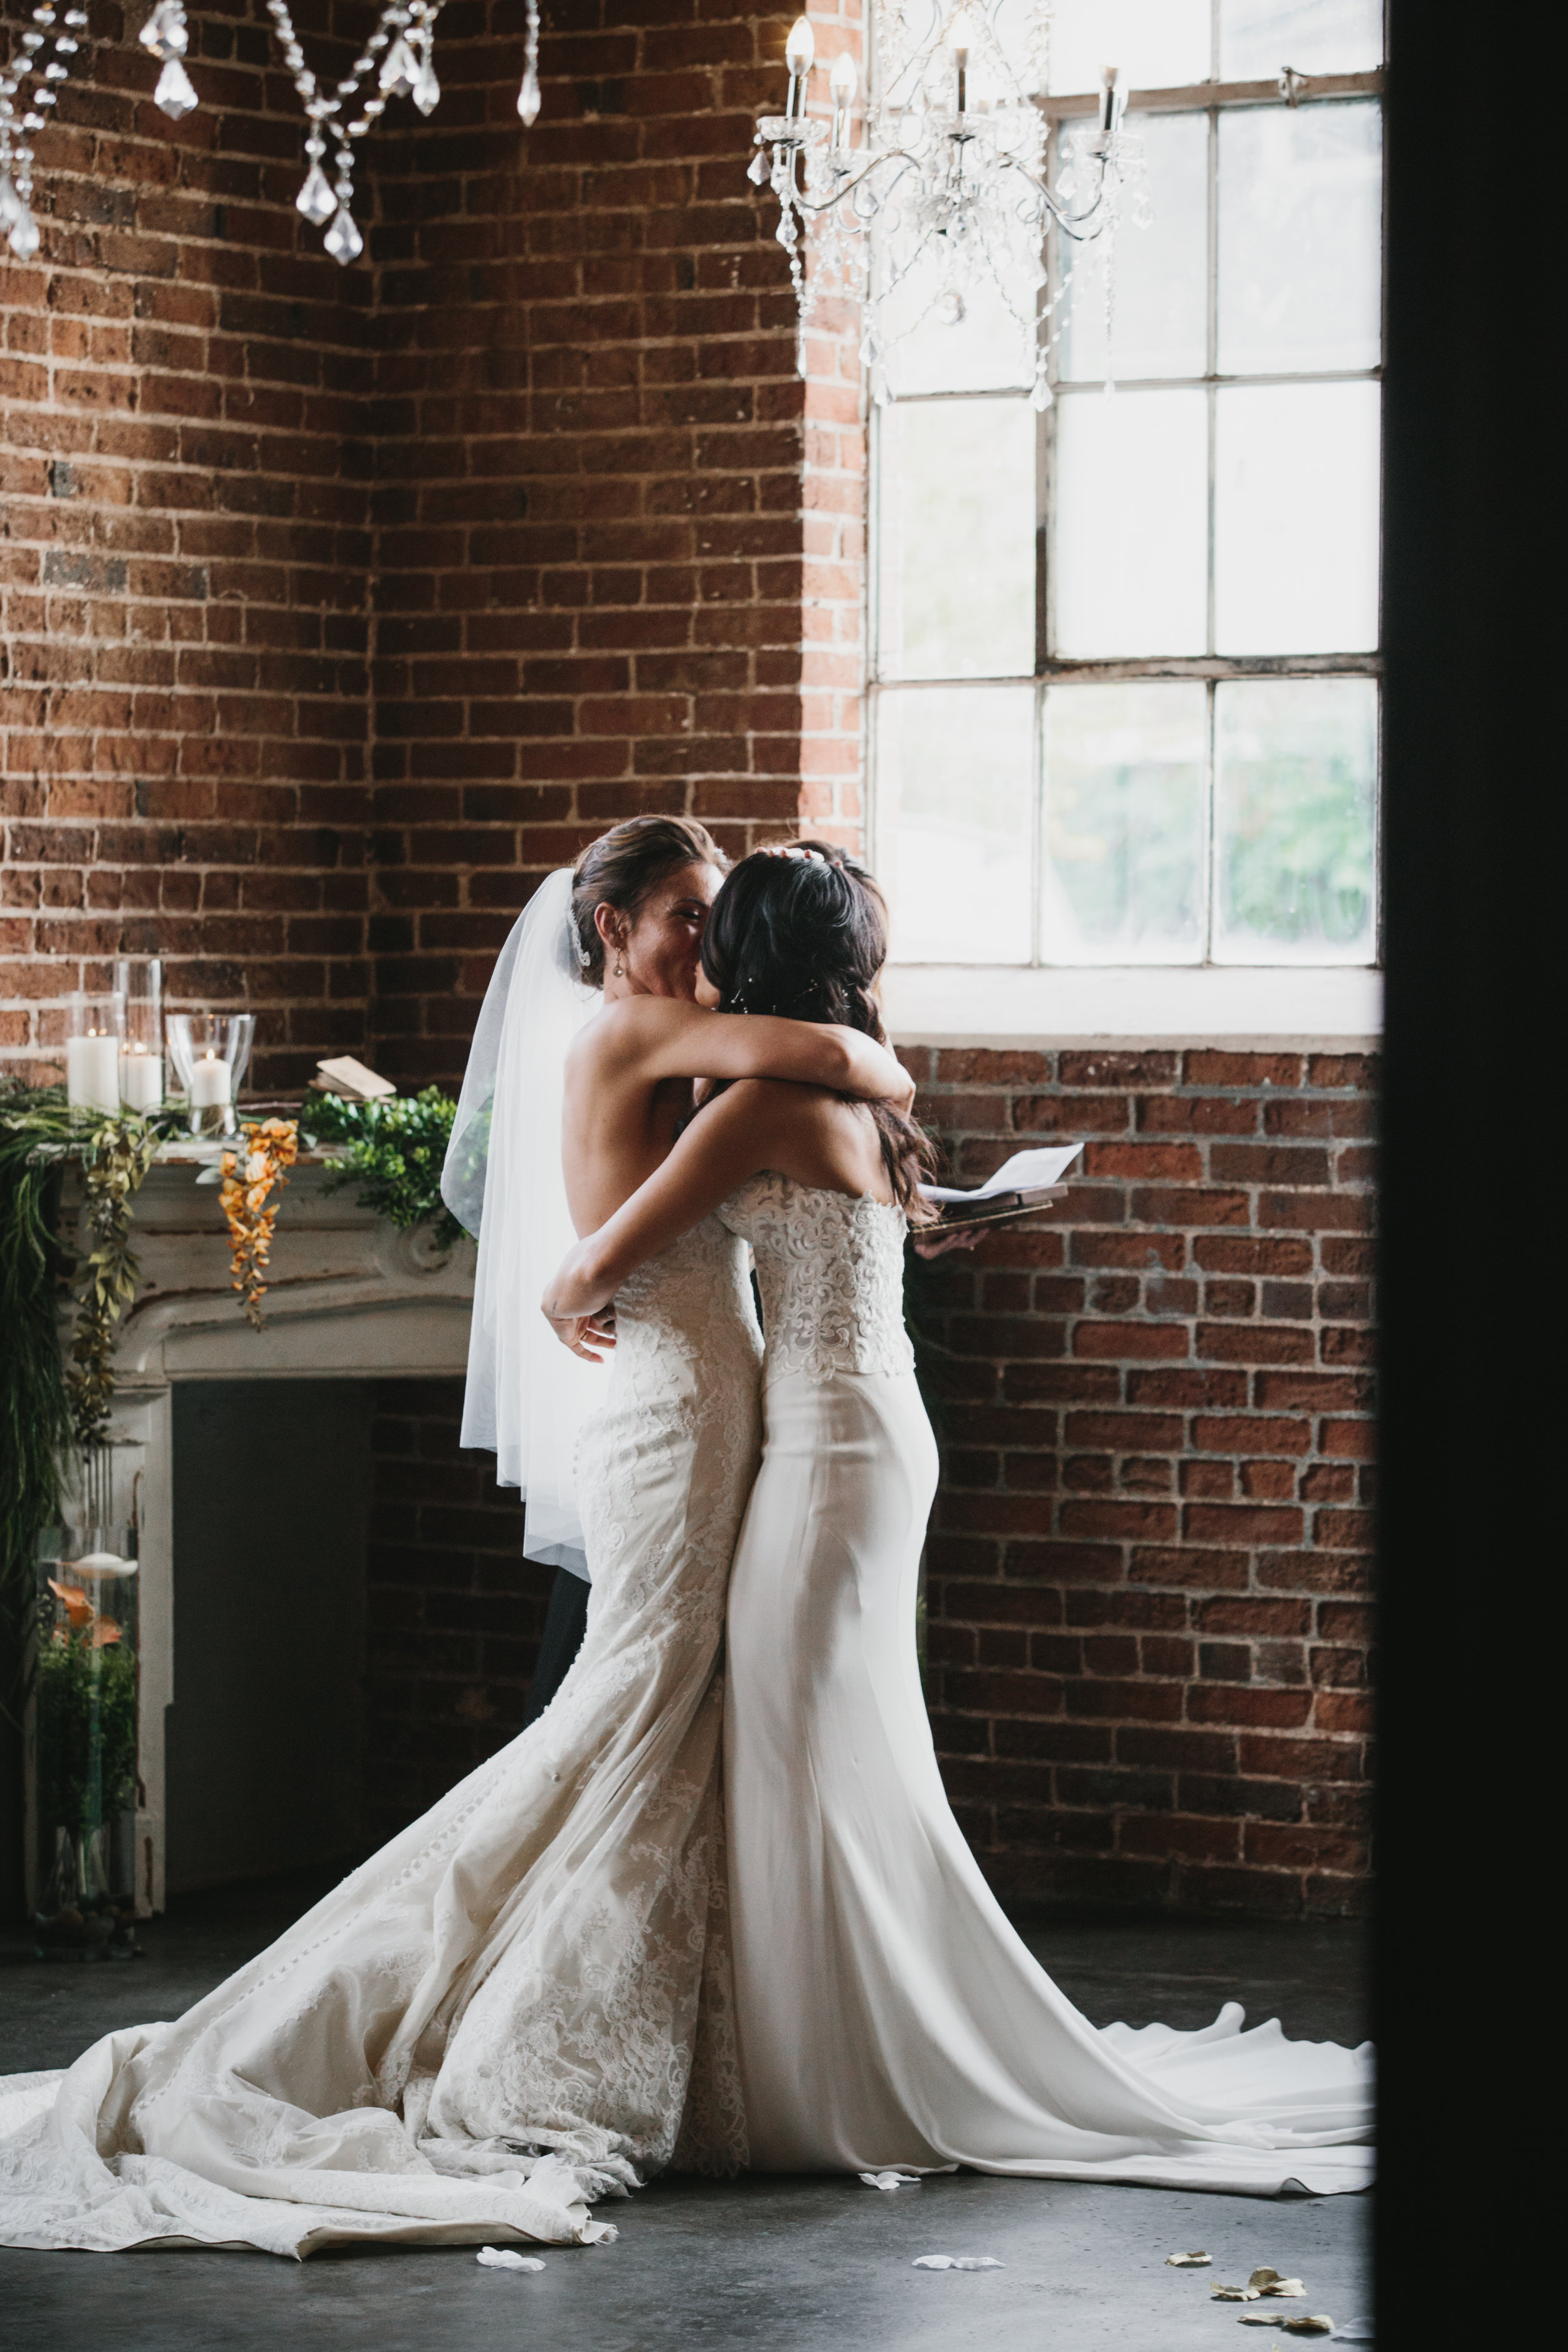 Emily + Jovan | Denver Union Station Wedding | Matthew Christopher Cosette gown from Little White Dress Bridal Shop | Photo by We Are Matt + Jess